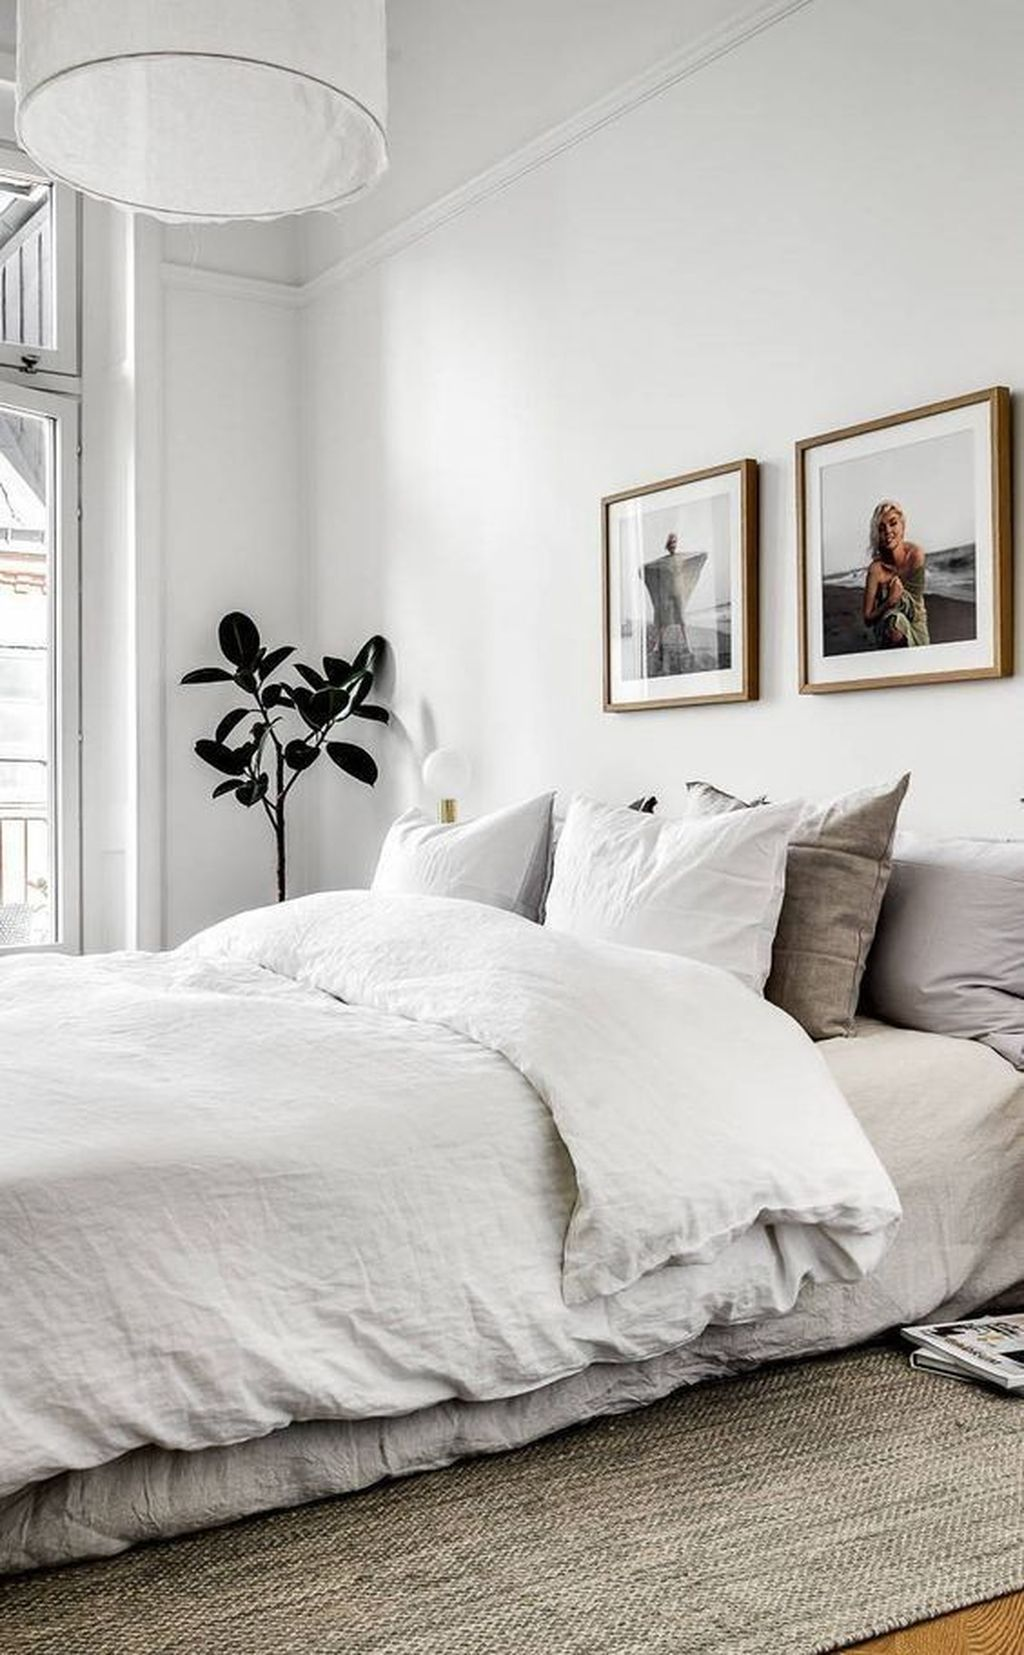 44 Top Small Bedroom Ideas On A Budget Home decor